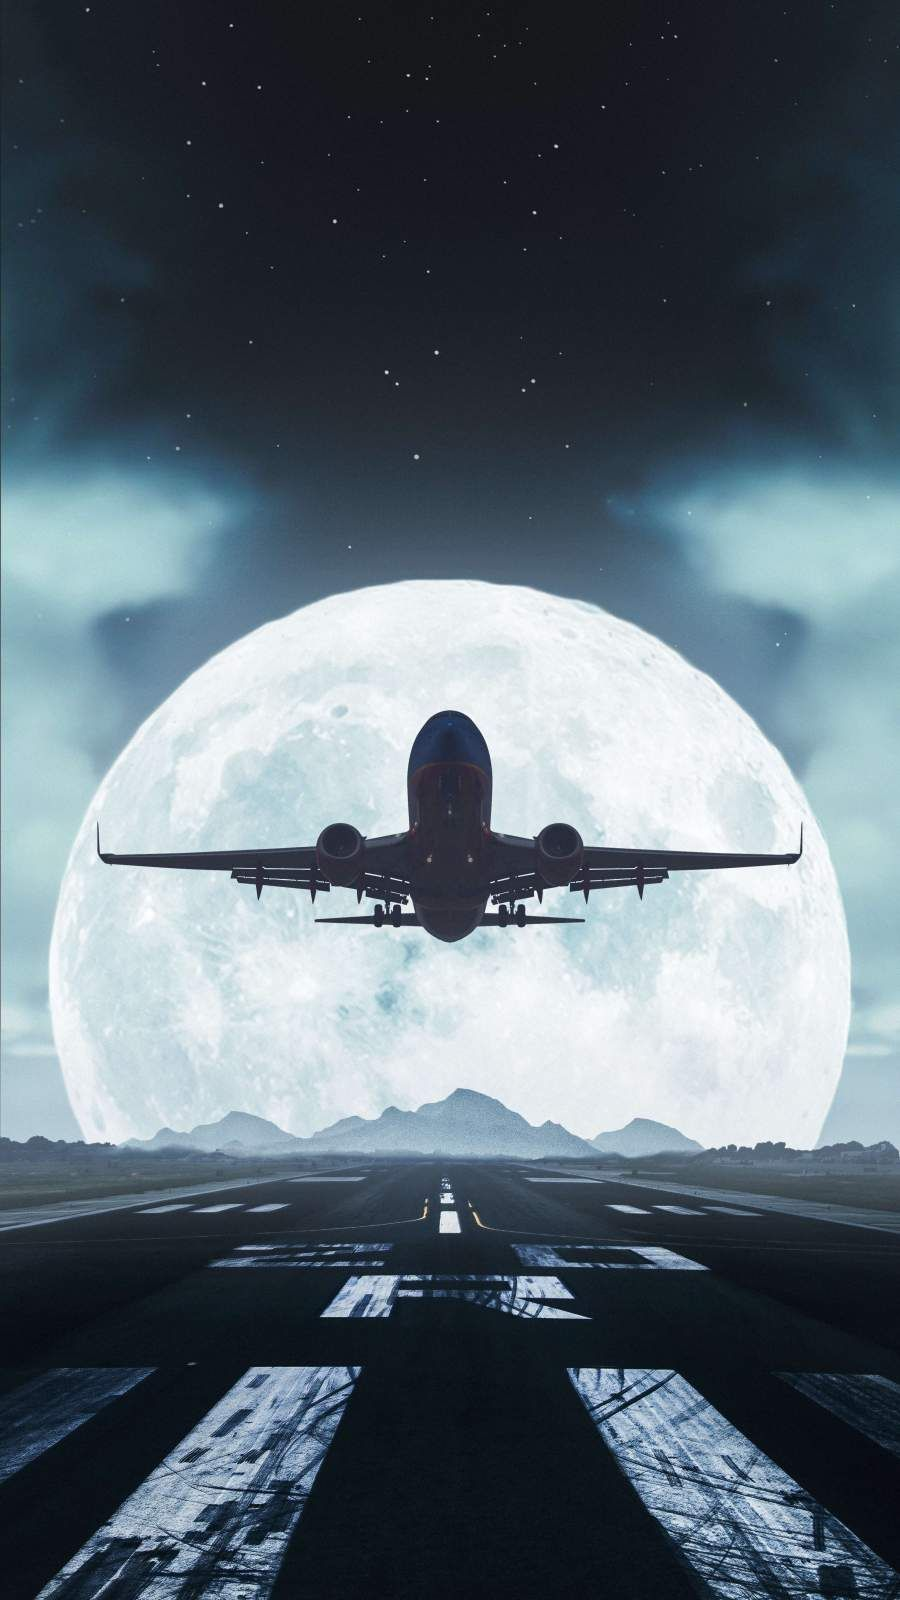 Airplane Take Off Iphone Wallpaper In 2020 Iphone Wallpaper